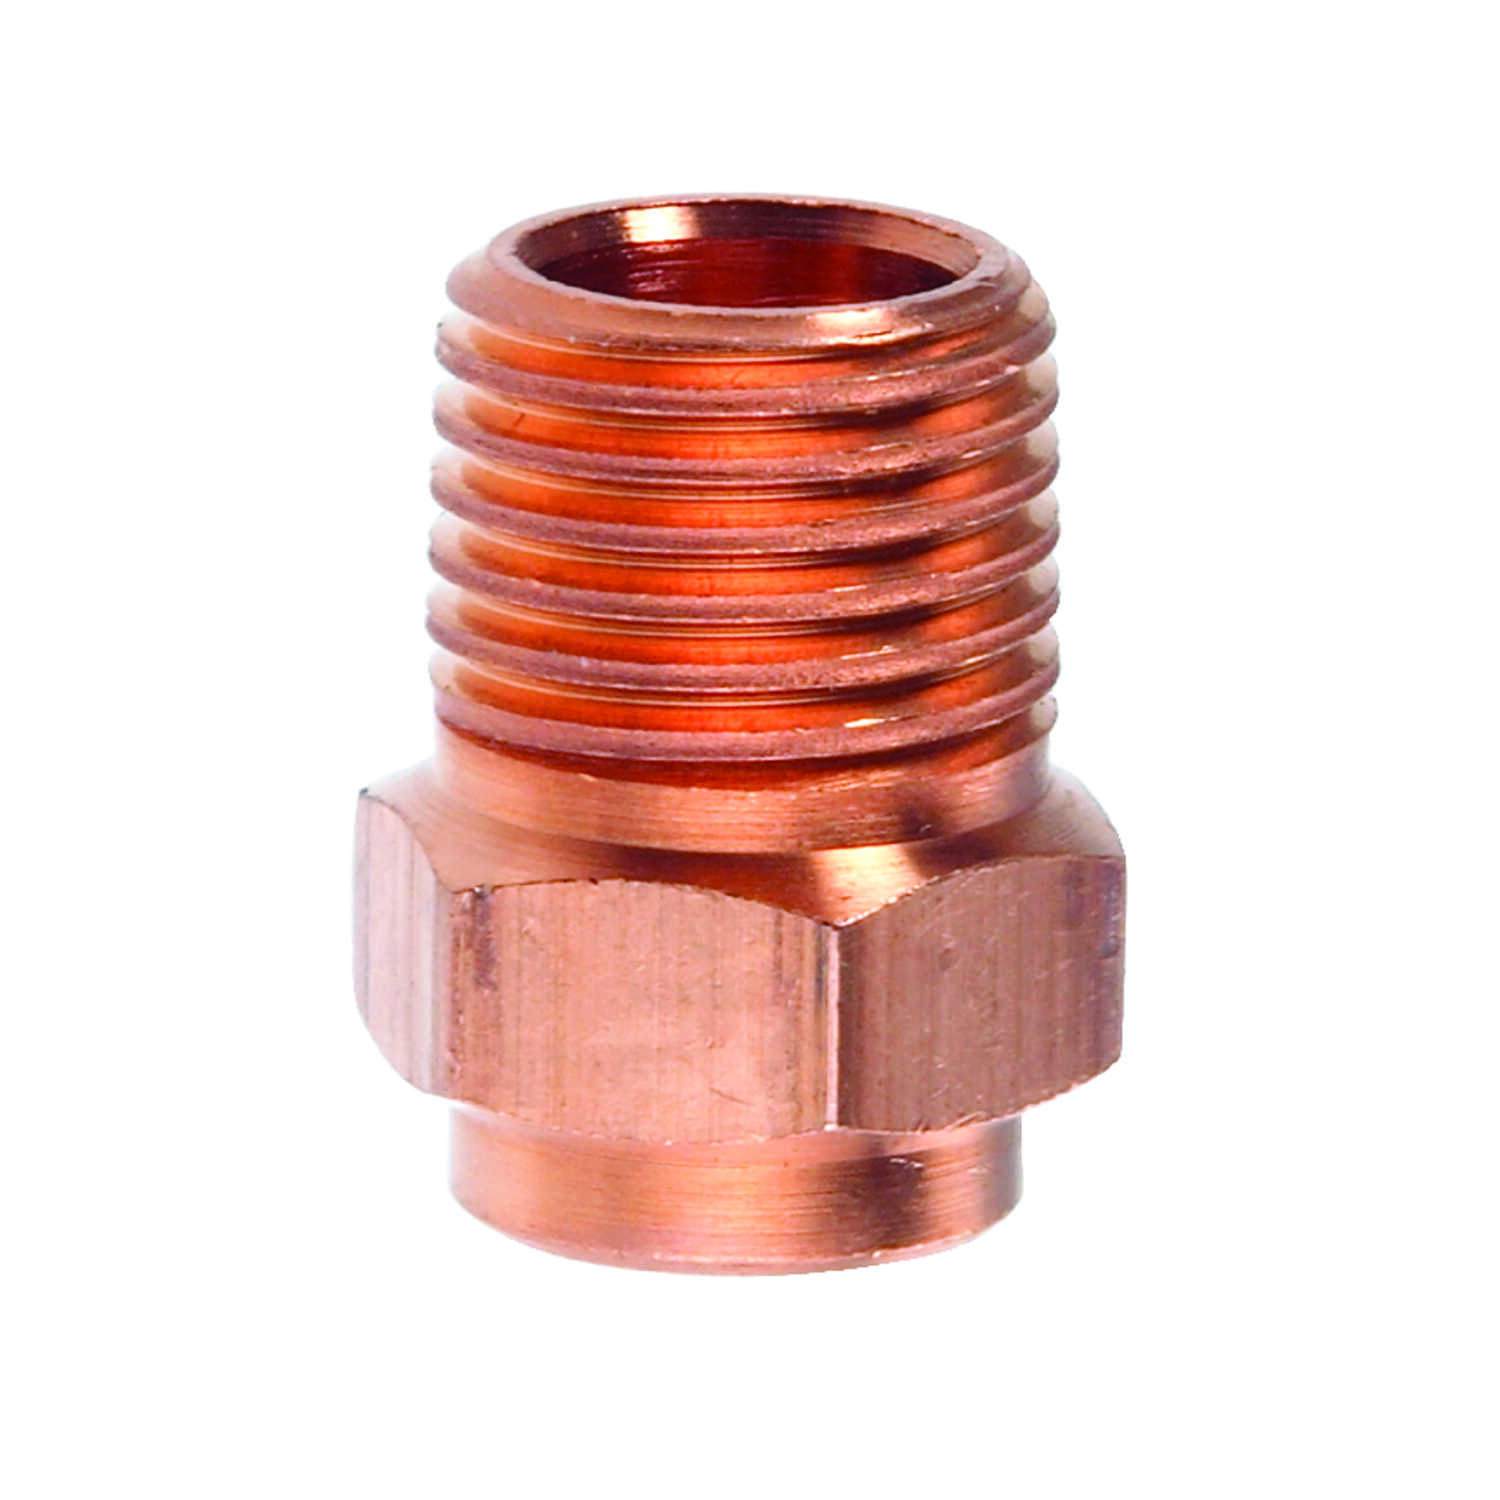 Elkhart  1/4 in. Dia. x 1/4 in. Dia. Copper To MIP  Copper  Pipe Adapter